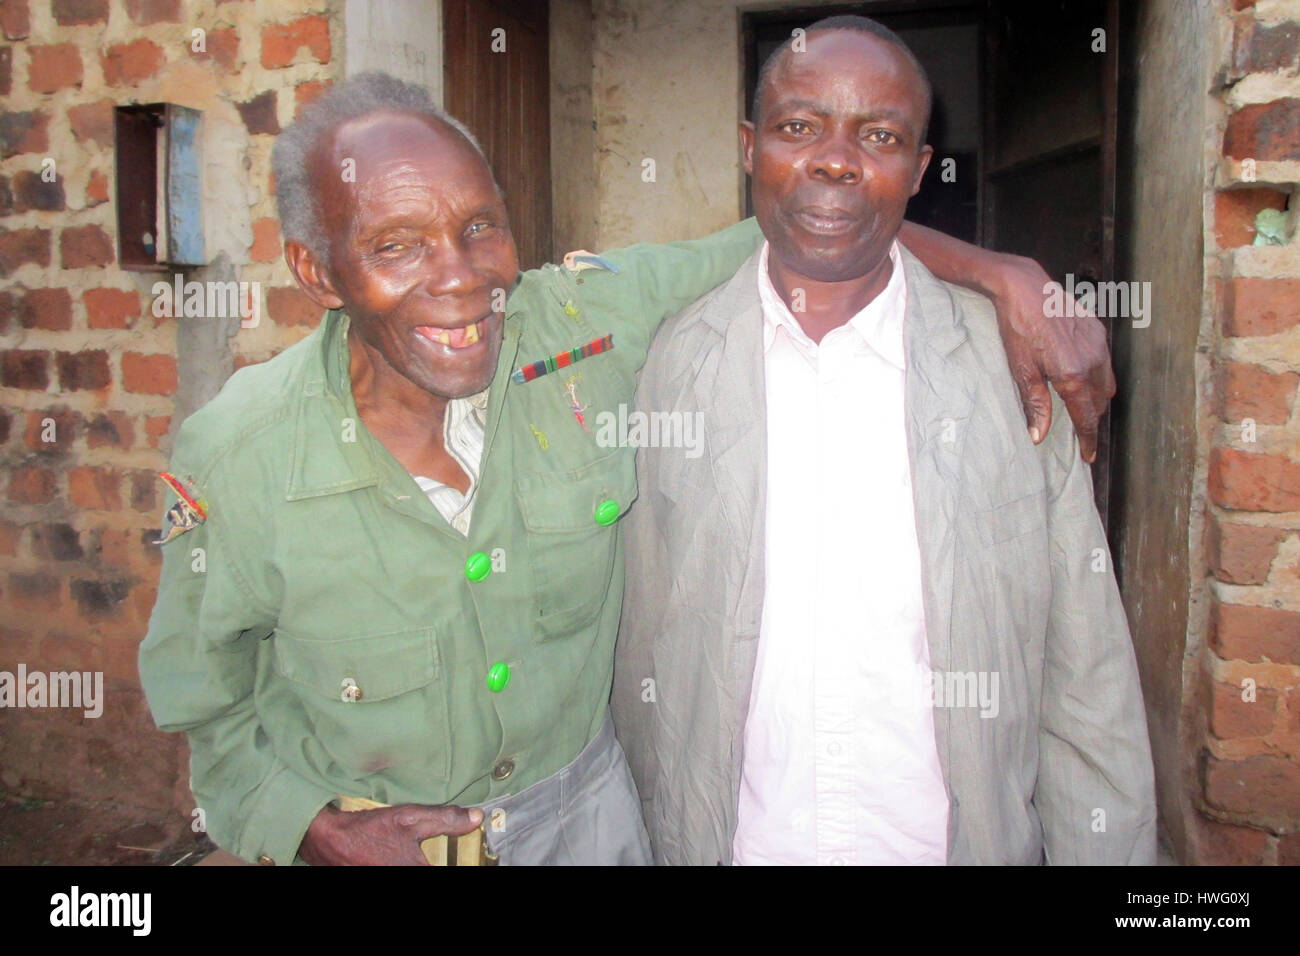 World War II veteran Elismus Katende (l), wearing his old uniform, shares a lugh with his grandson in Mugomba village, - Stock Image